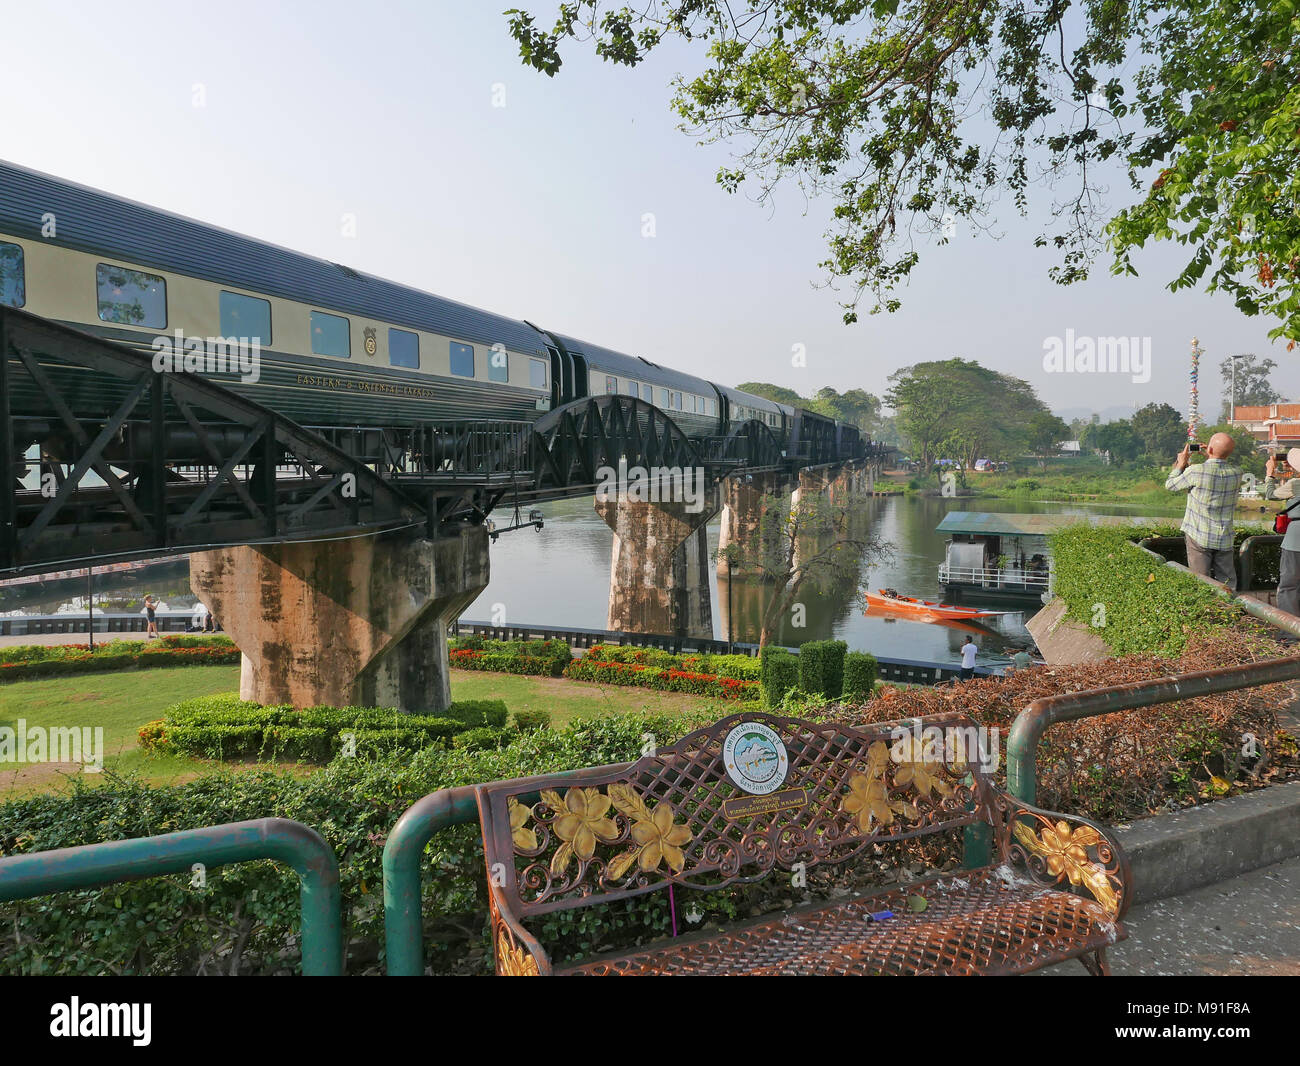 The Belmond Oriental Express train crossing over the Bridge of the River Kwai in Kanchanburi, Thailand - Stock Image